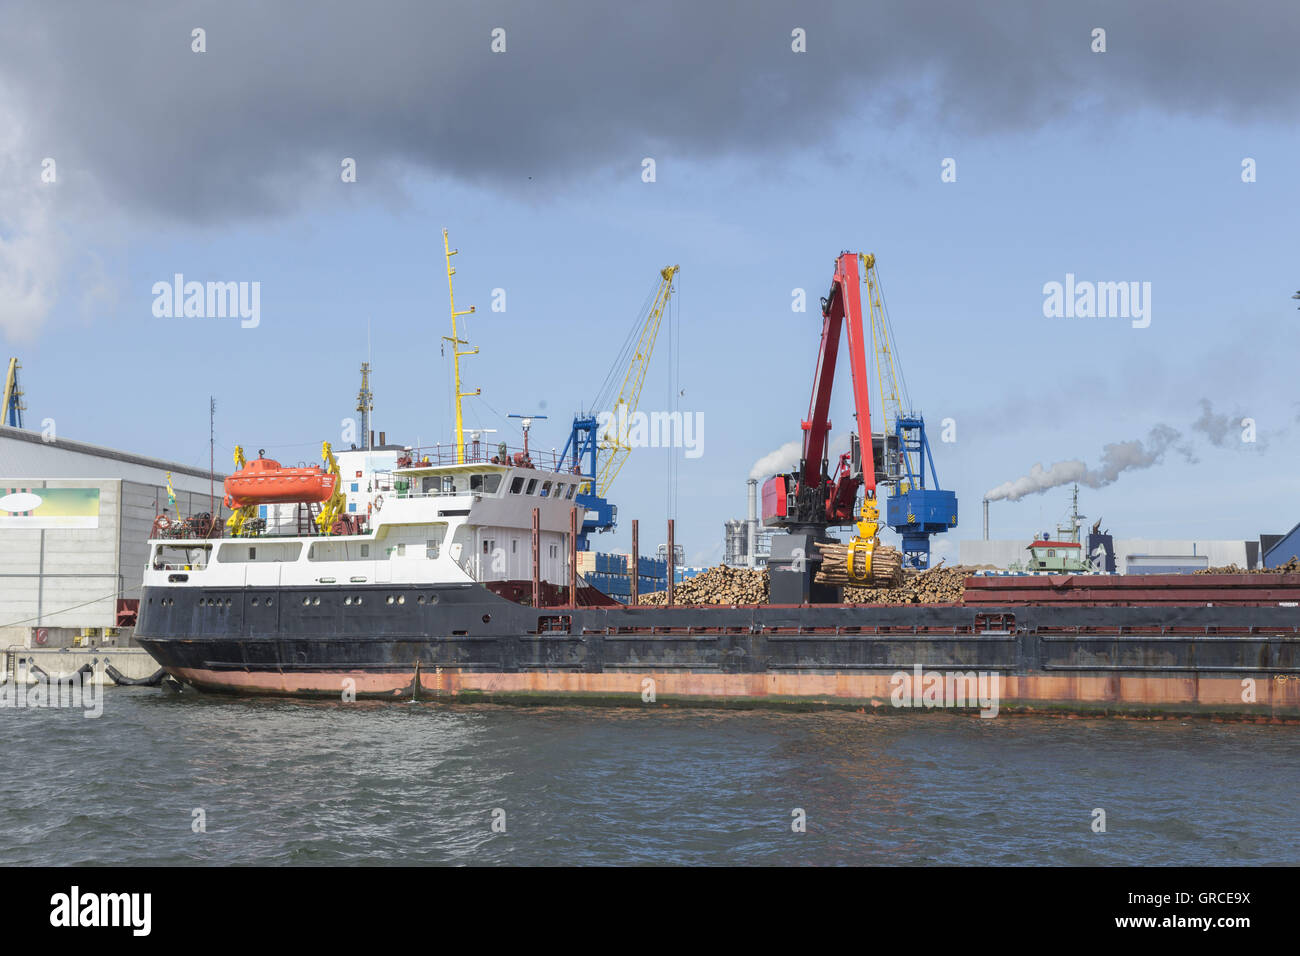 General Cargo Vessel With Timber Is Unloaded At The Port Of Wismar From Excavator - Stock Image